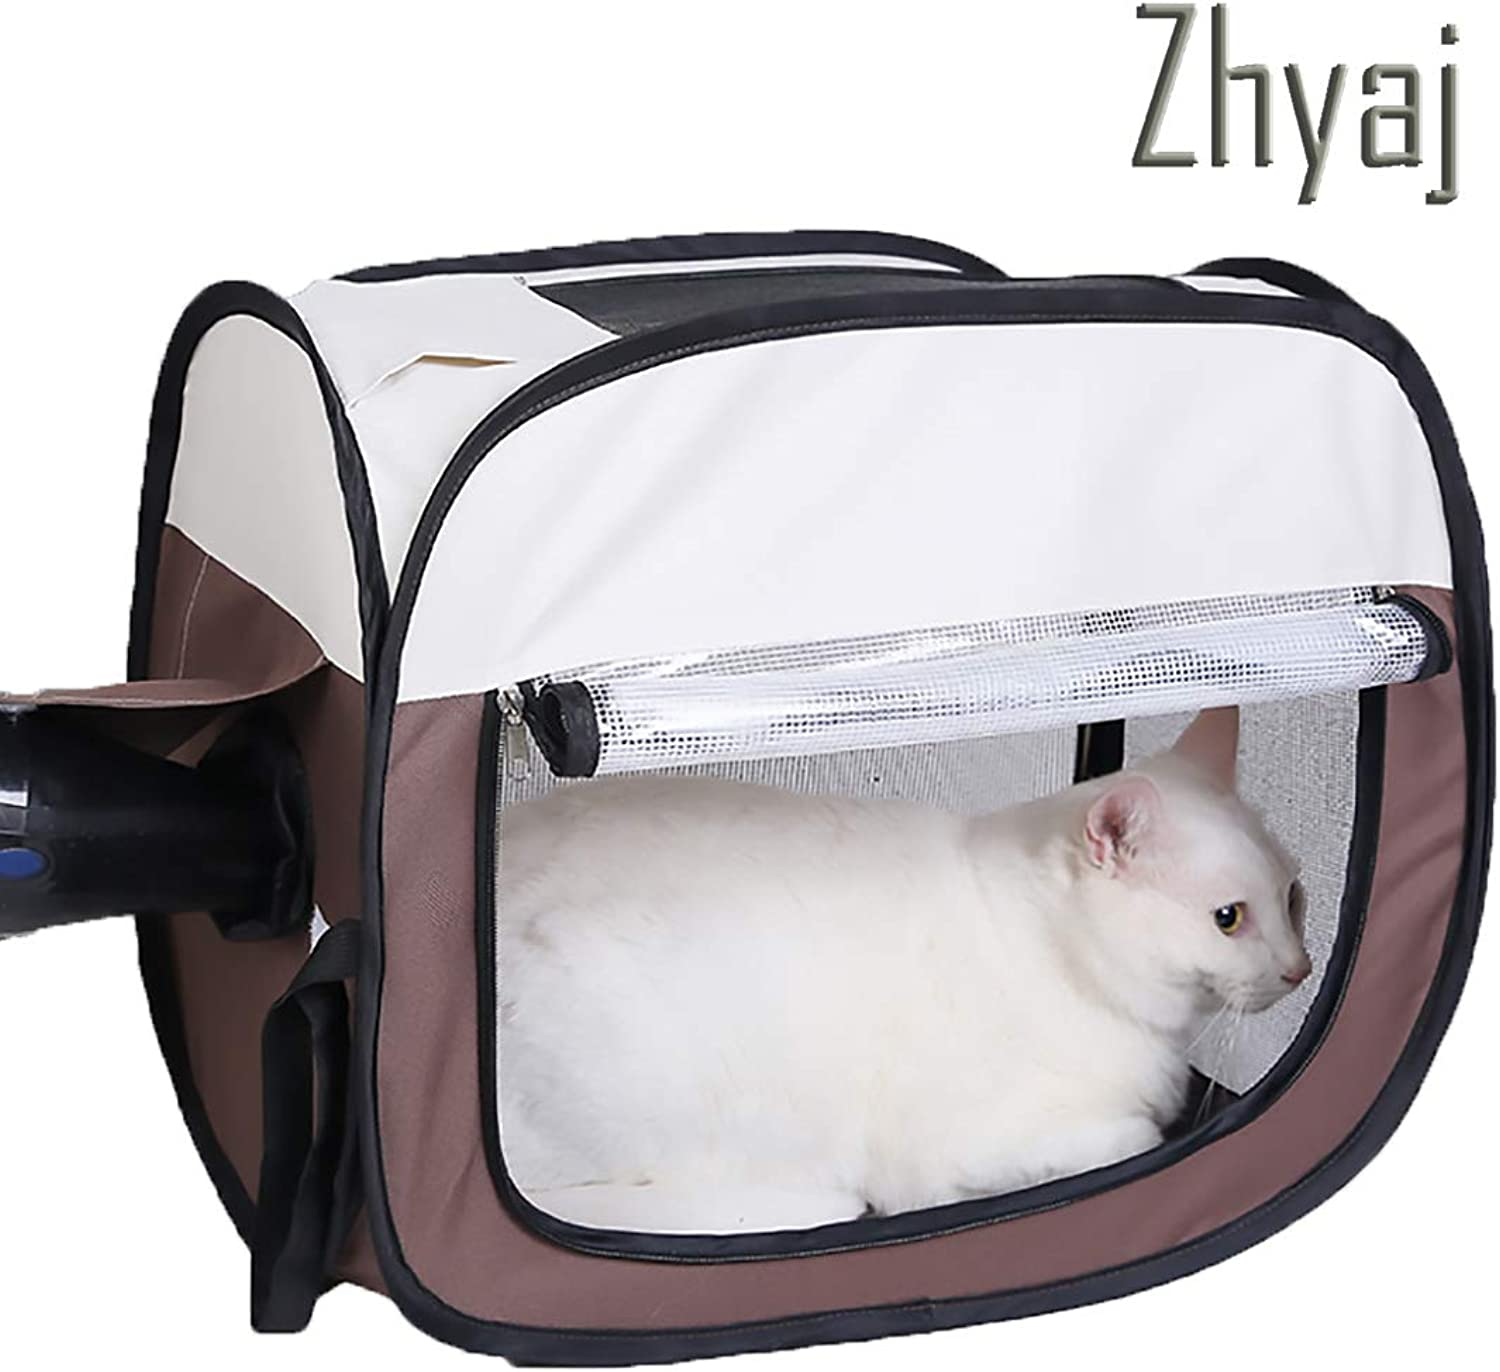 Outdoor Dog Kennel, Foldable Portable Car Pet Carrier Drying Box 600D Oxford Cloth Large Dog House Dog Tent,B